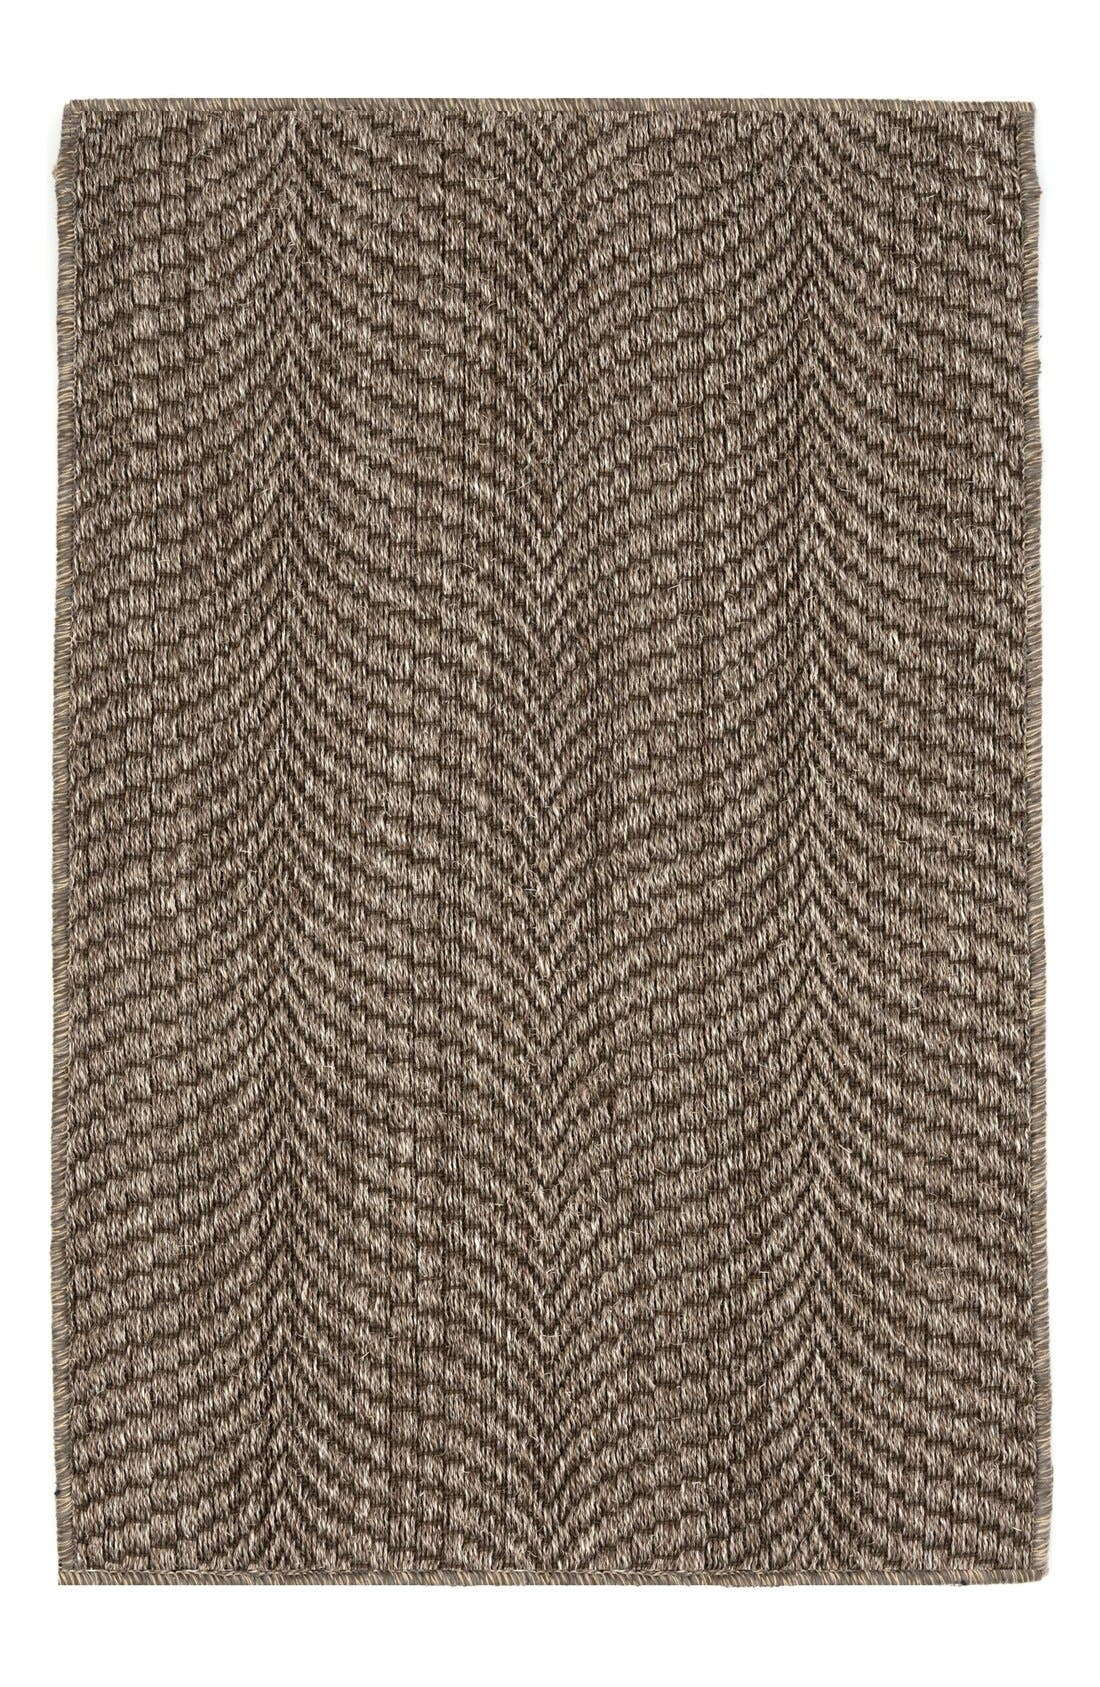 'Wave' Rug,                             Main thumbnail 1, color,                             Greige